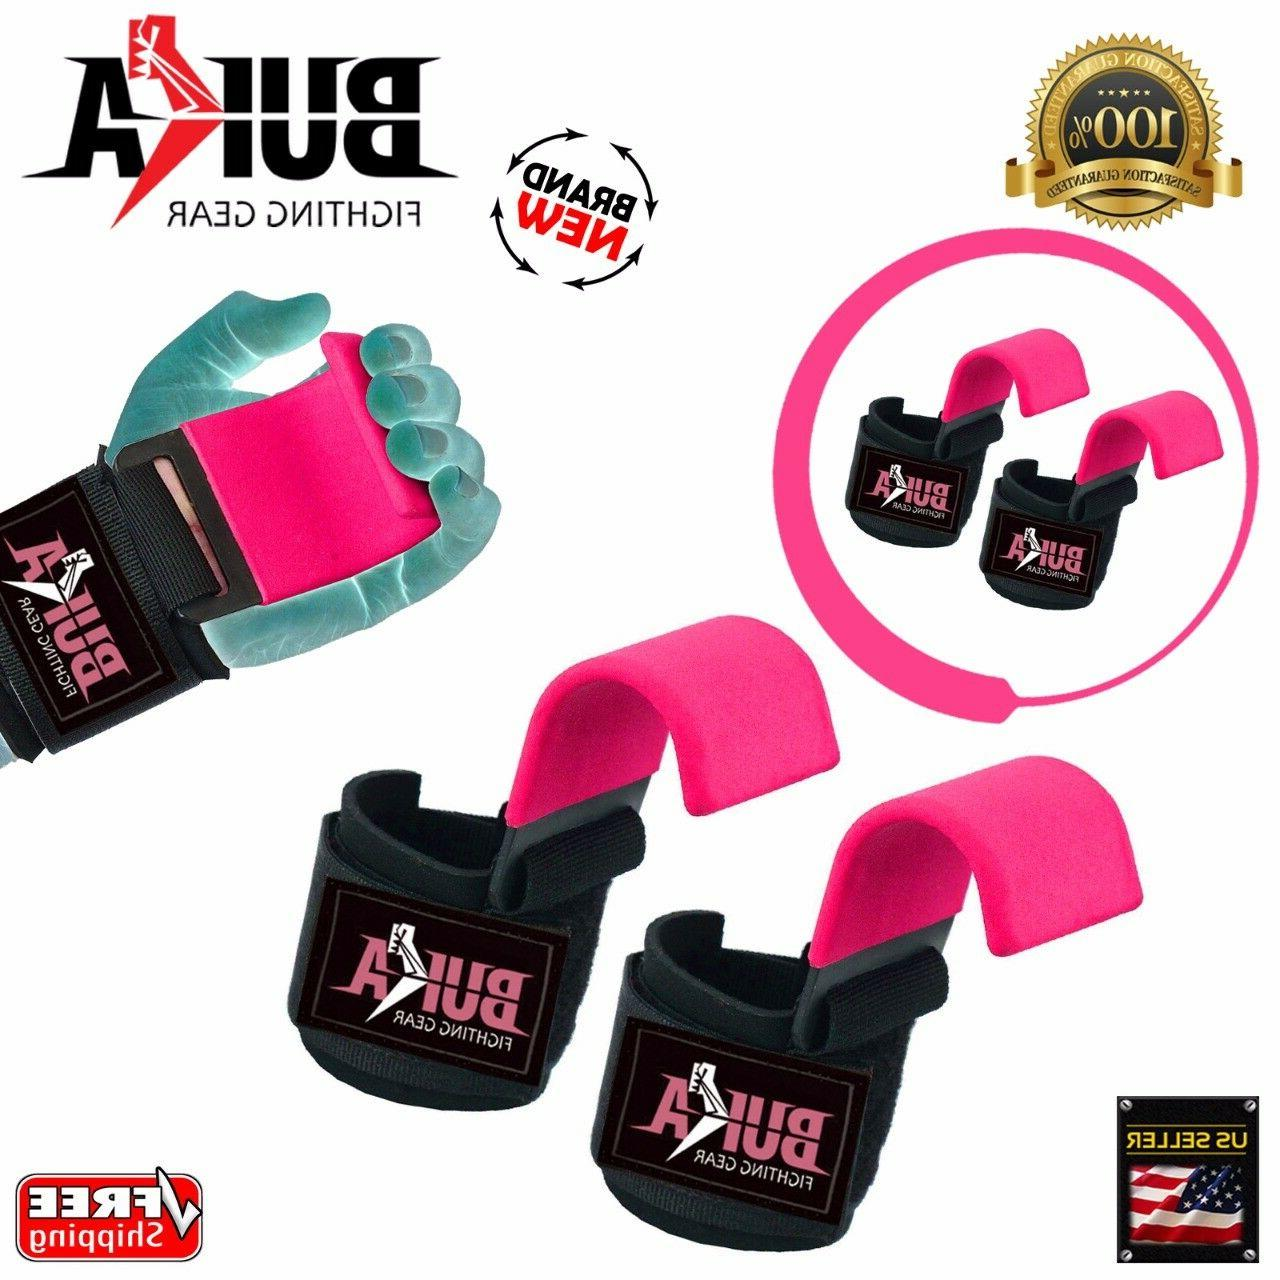 Weight Lifting Power Training Hook Grips Gloves Wrist Support